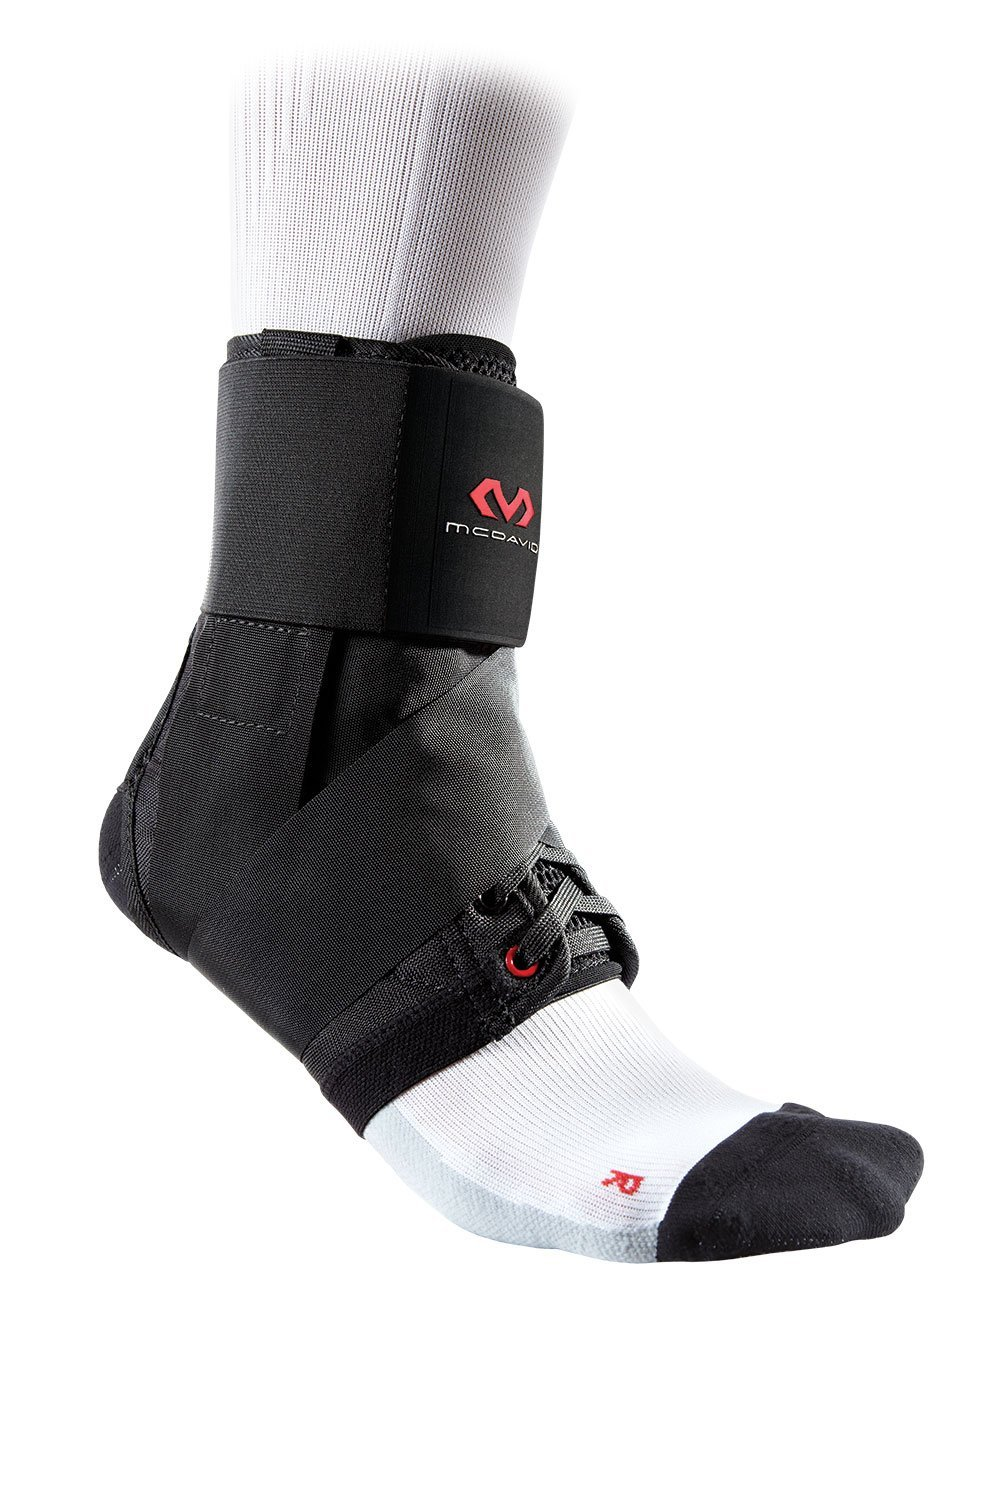 McDavid 195 Deluxe Ankle Brace with Strap (Black, Small) by McDavid (Image #1)